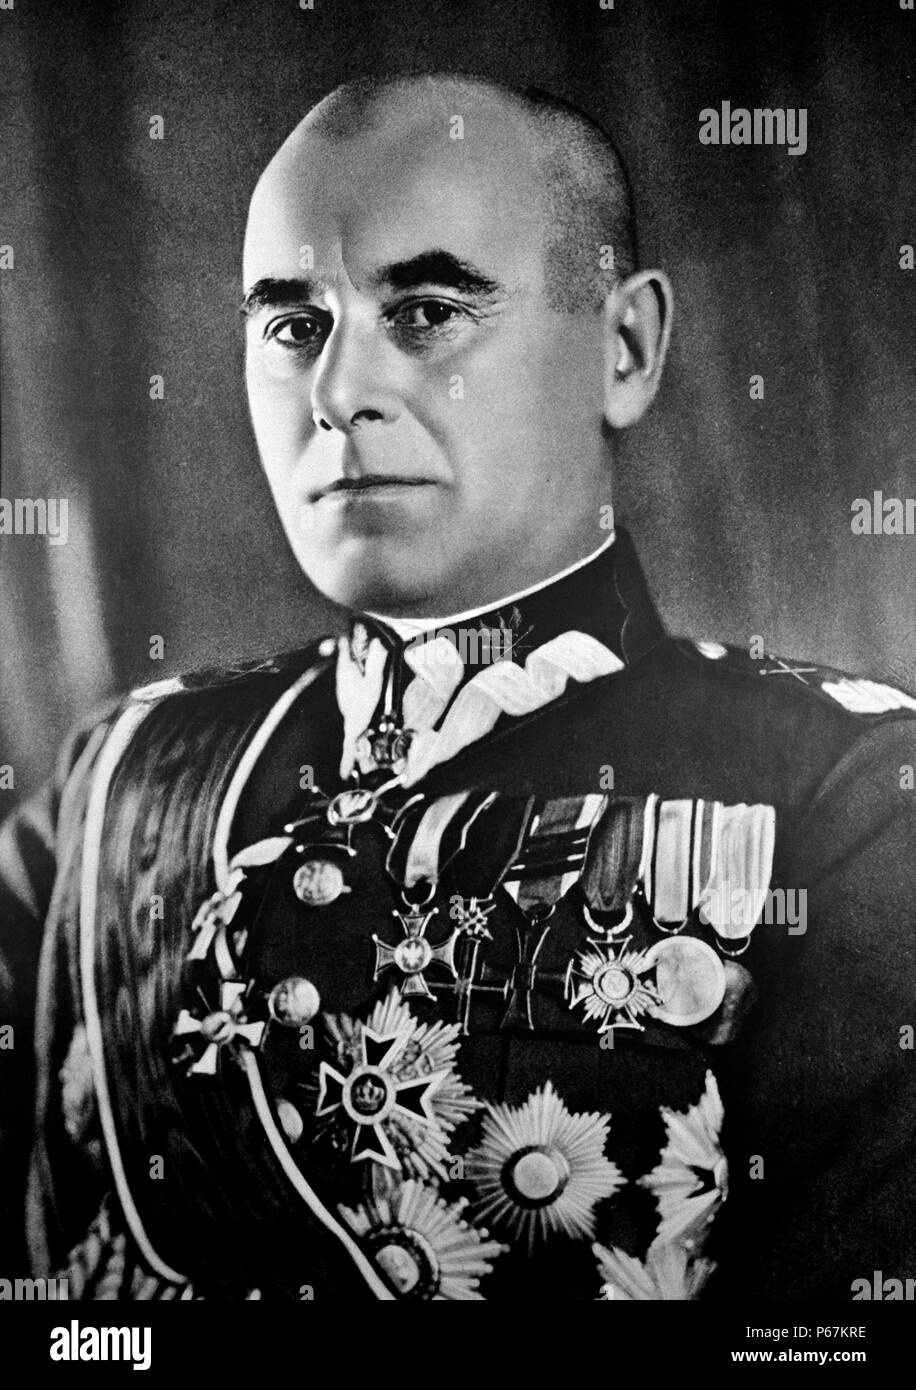 Photograph of Edward Rydz-Smigly (1886-1941) Marshal of Poland, politician, Commander-in-Chief of Poland's armed forces, and a painter and poet. Dated 1937 Stock Photo